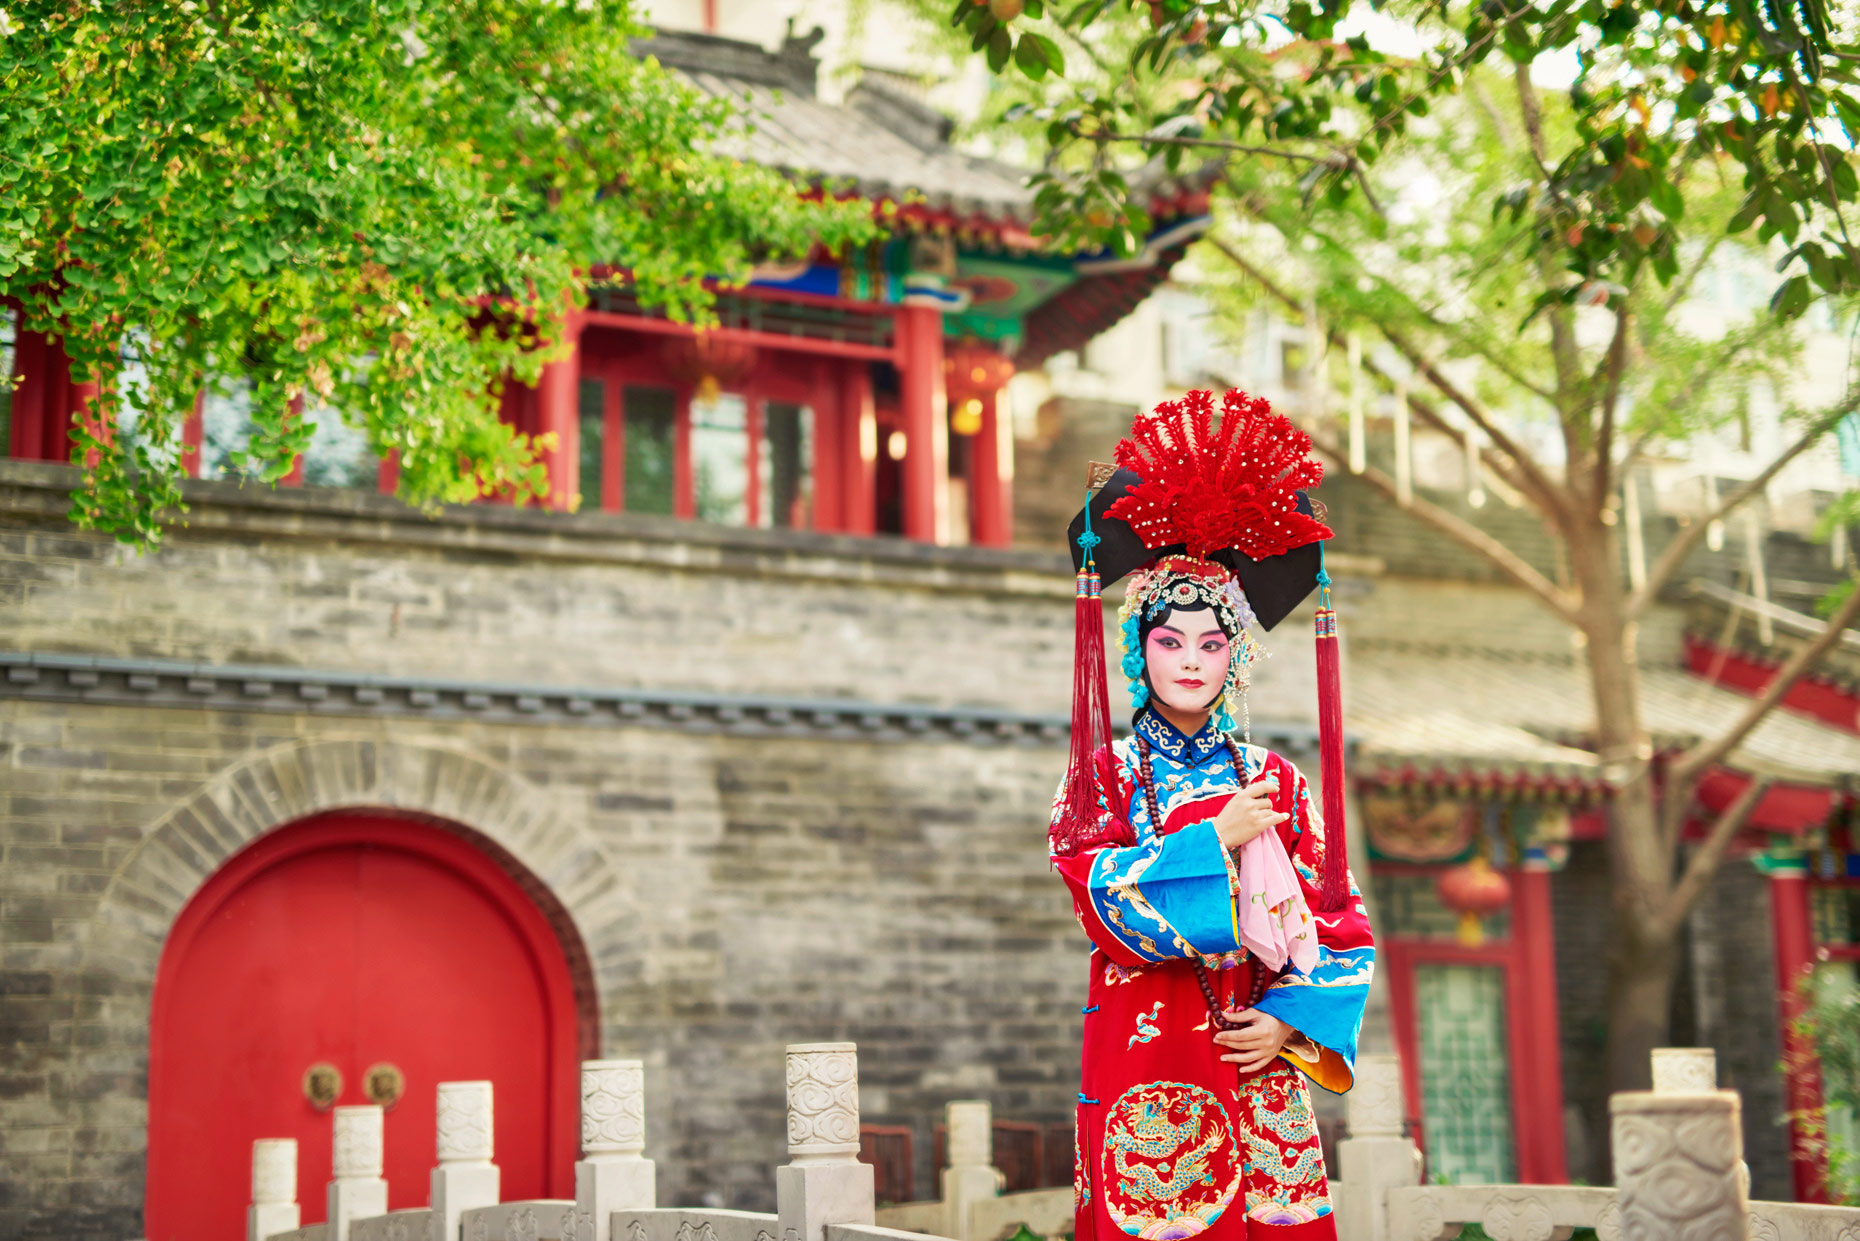 Abbott_China_Beijing_Shot_07_Chinese_opera_0072v4_Highres_TIFF_001